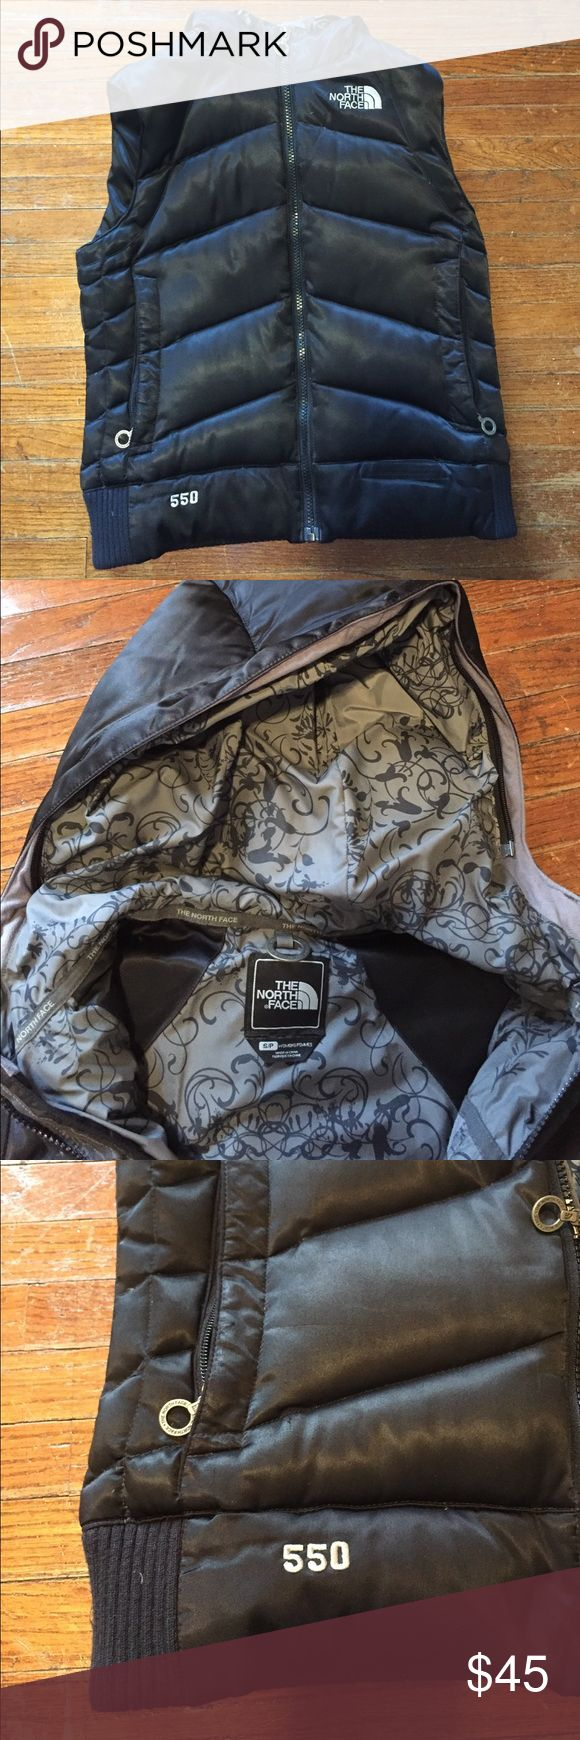 North face vest Black Trendy north face vest in black. Very cute vest! The North Face Jackets & Coats Vests